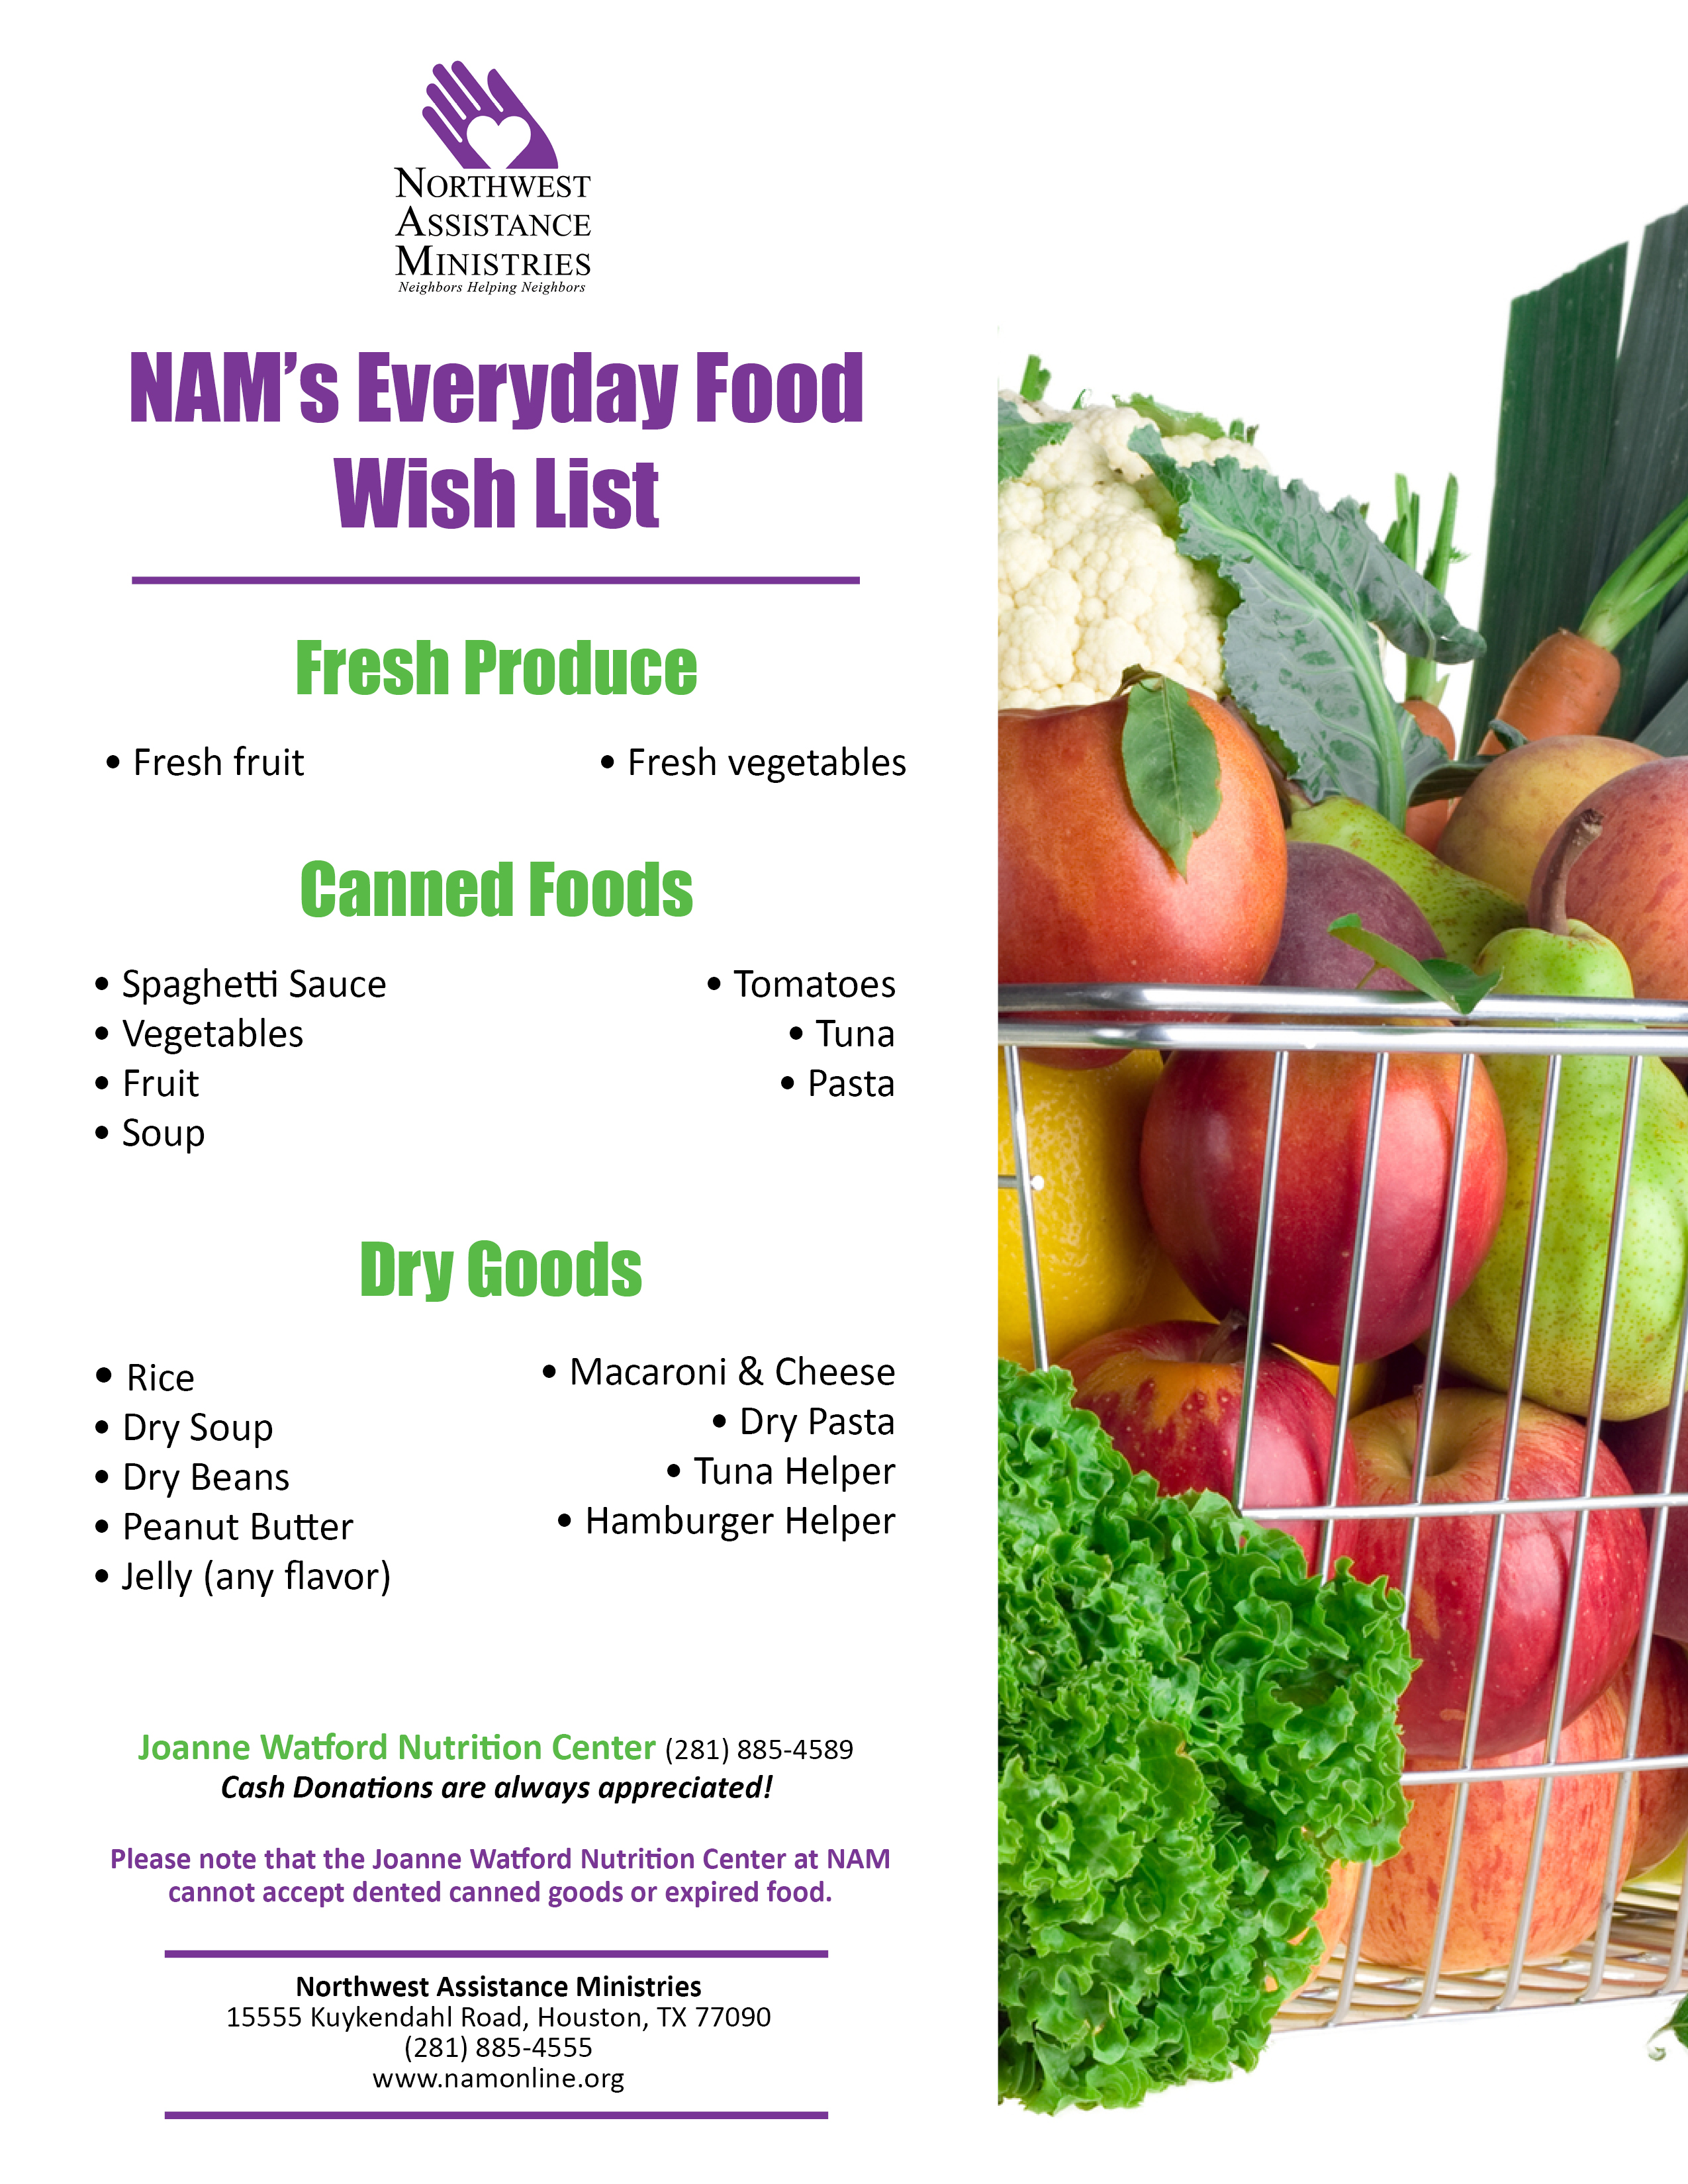 JWNC Daily Needs Food Wish List